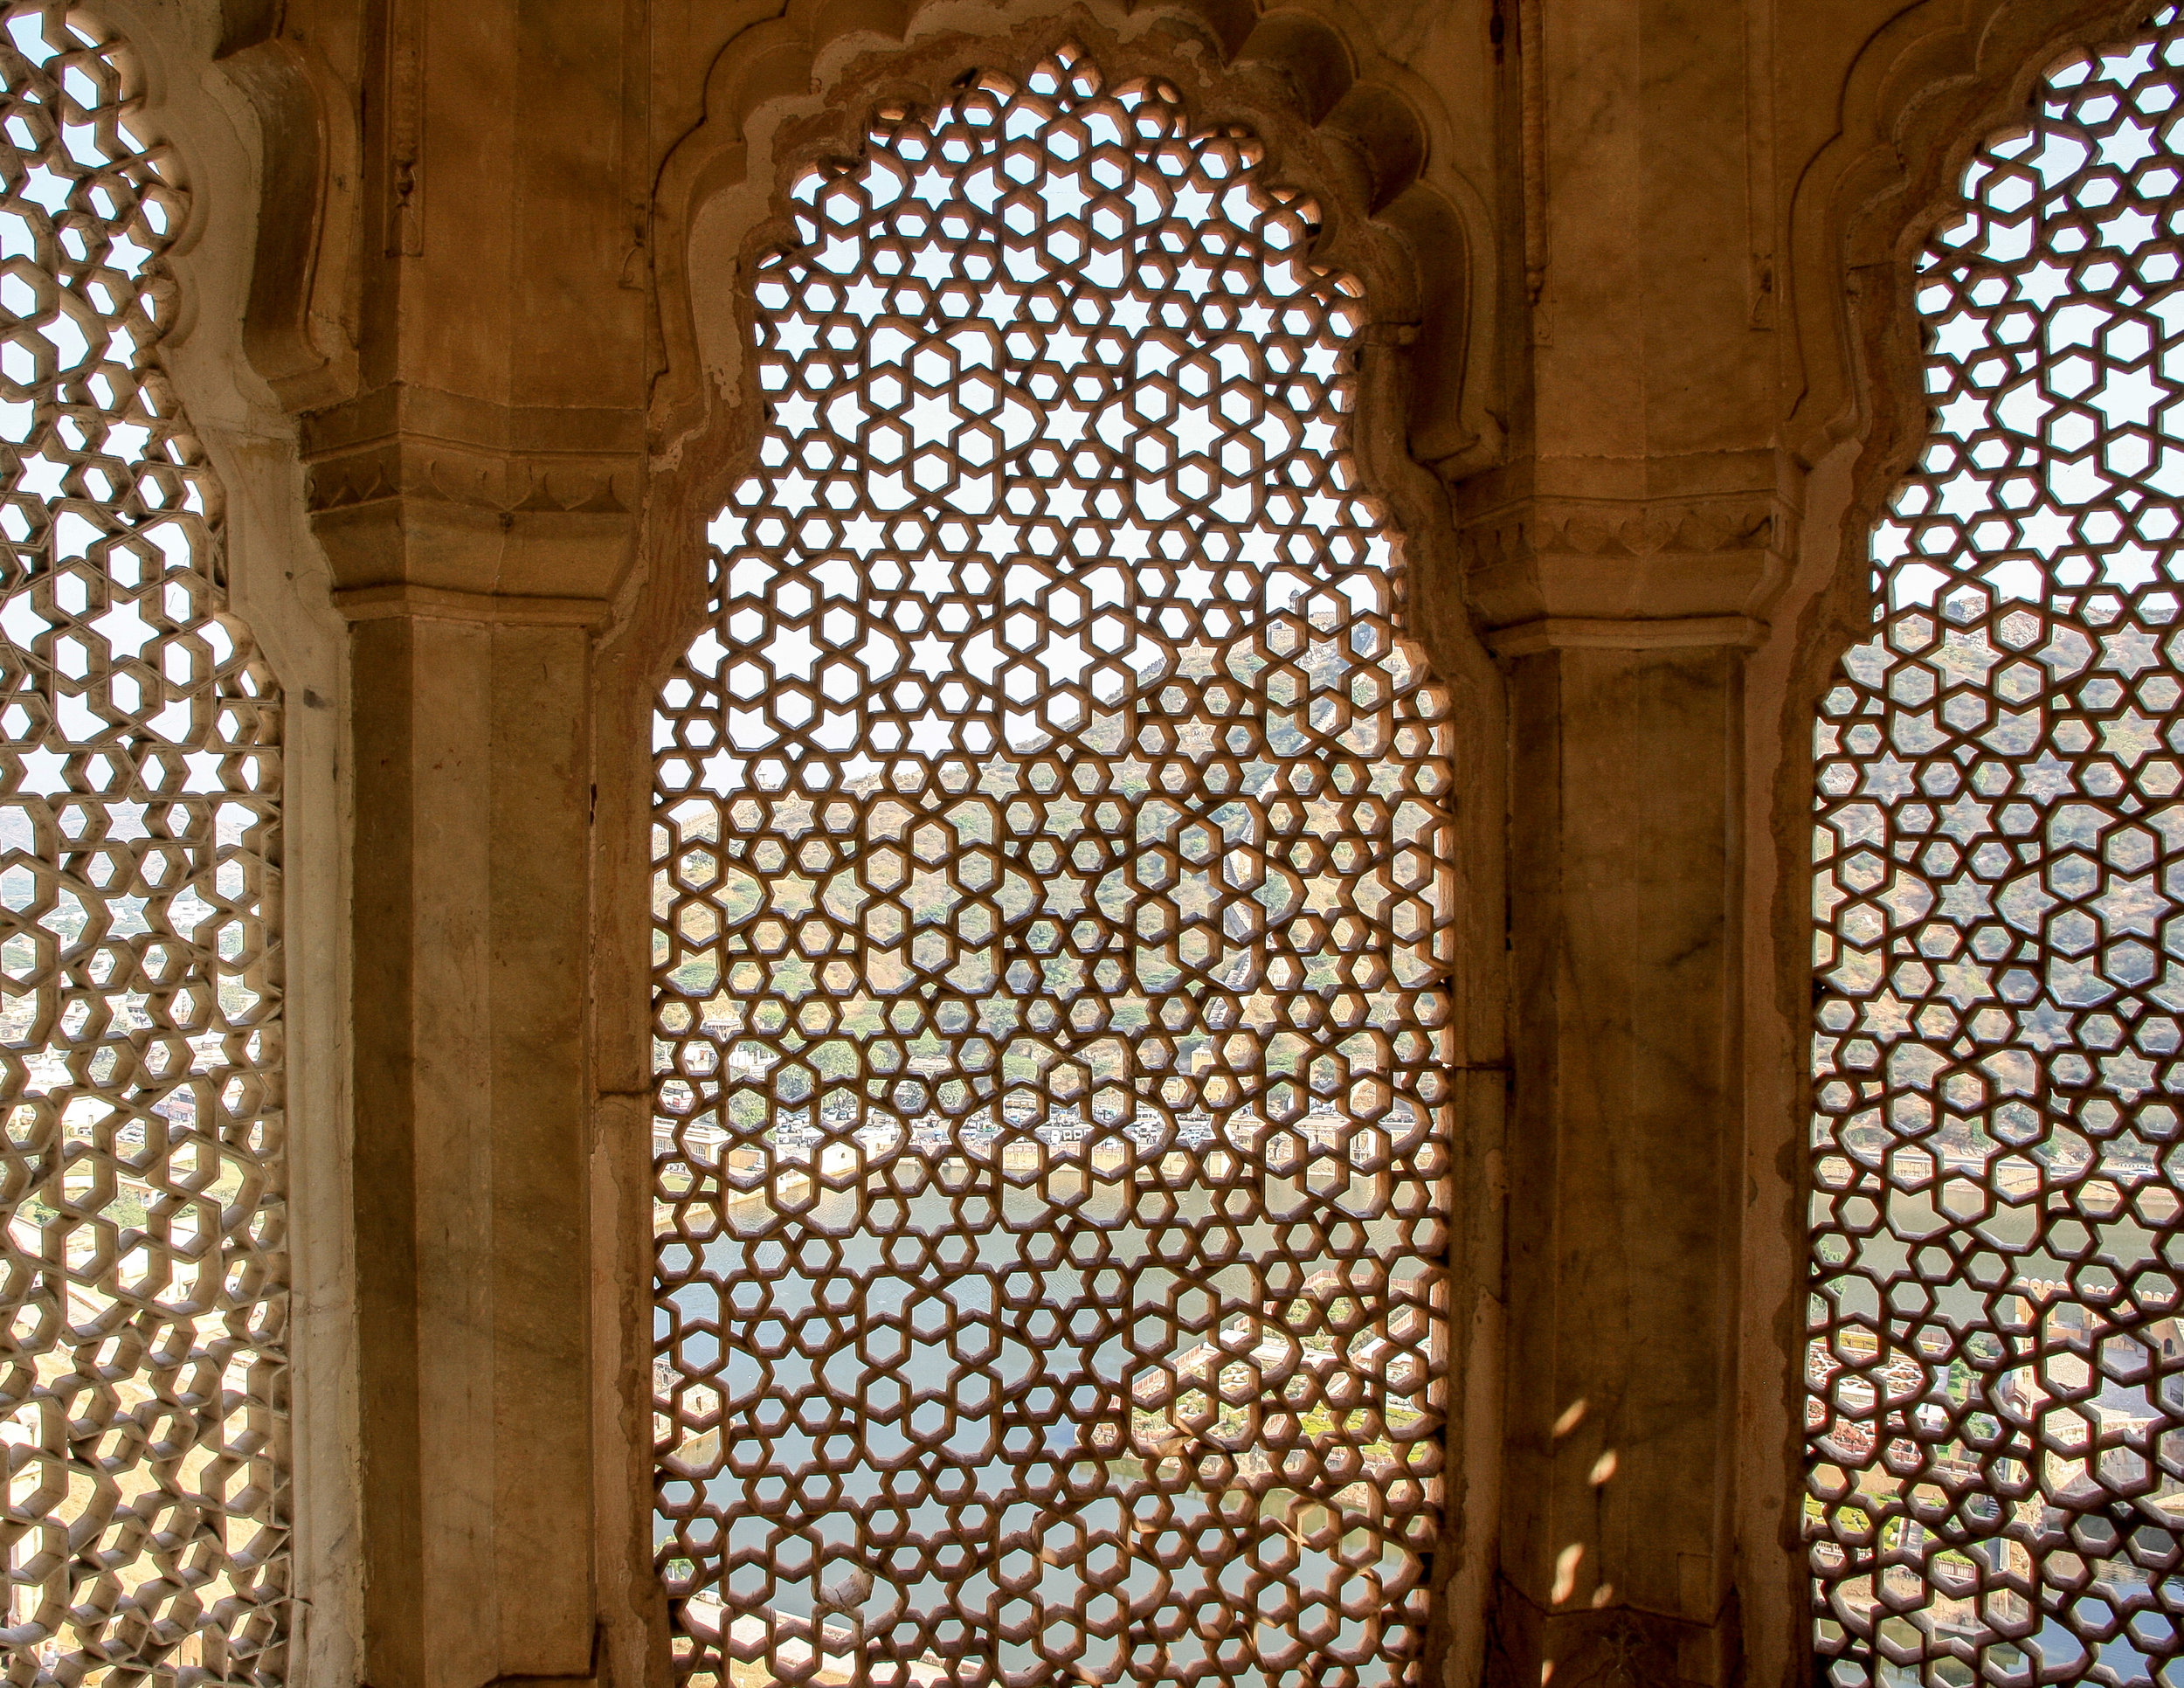 Places to visit in Rajasthan: Amber Fort, Rajasthan